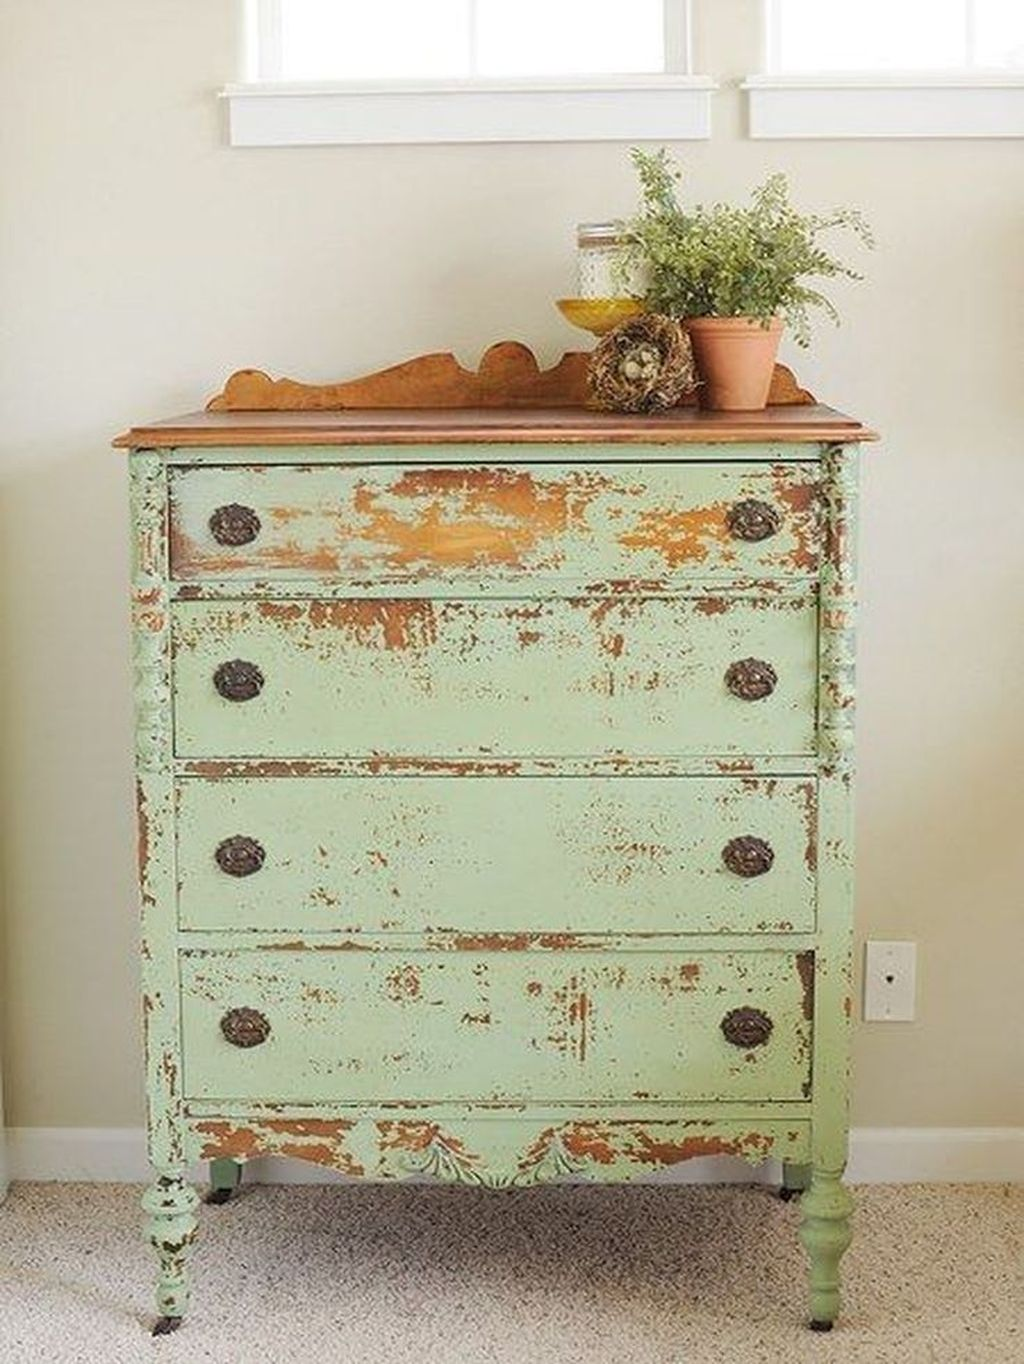 Popular Distressed Furniture Ideas To Get A Vintage Accent 05